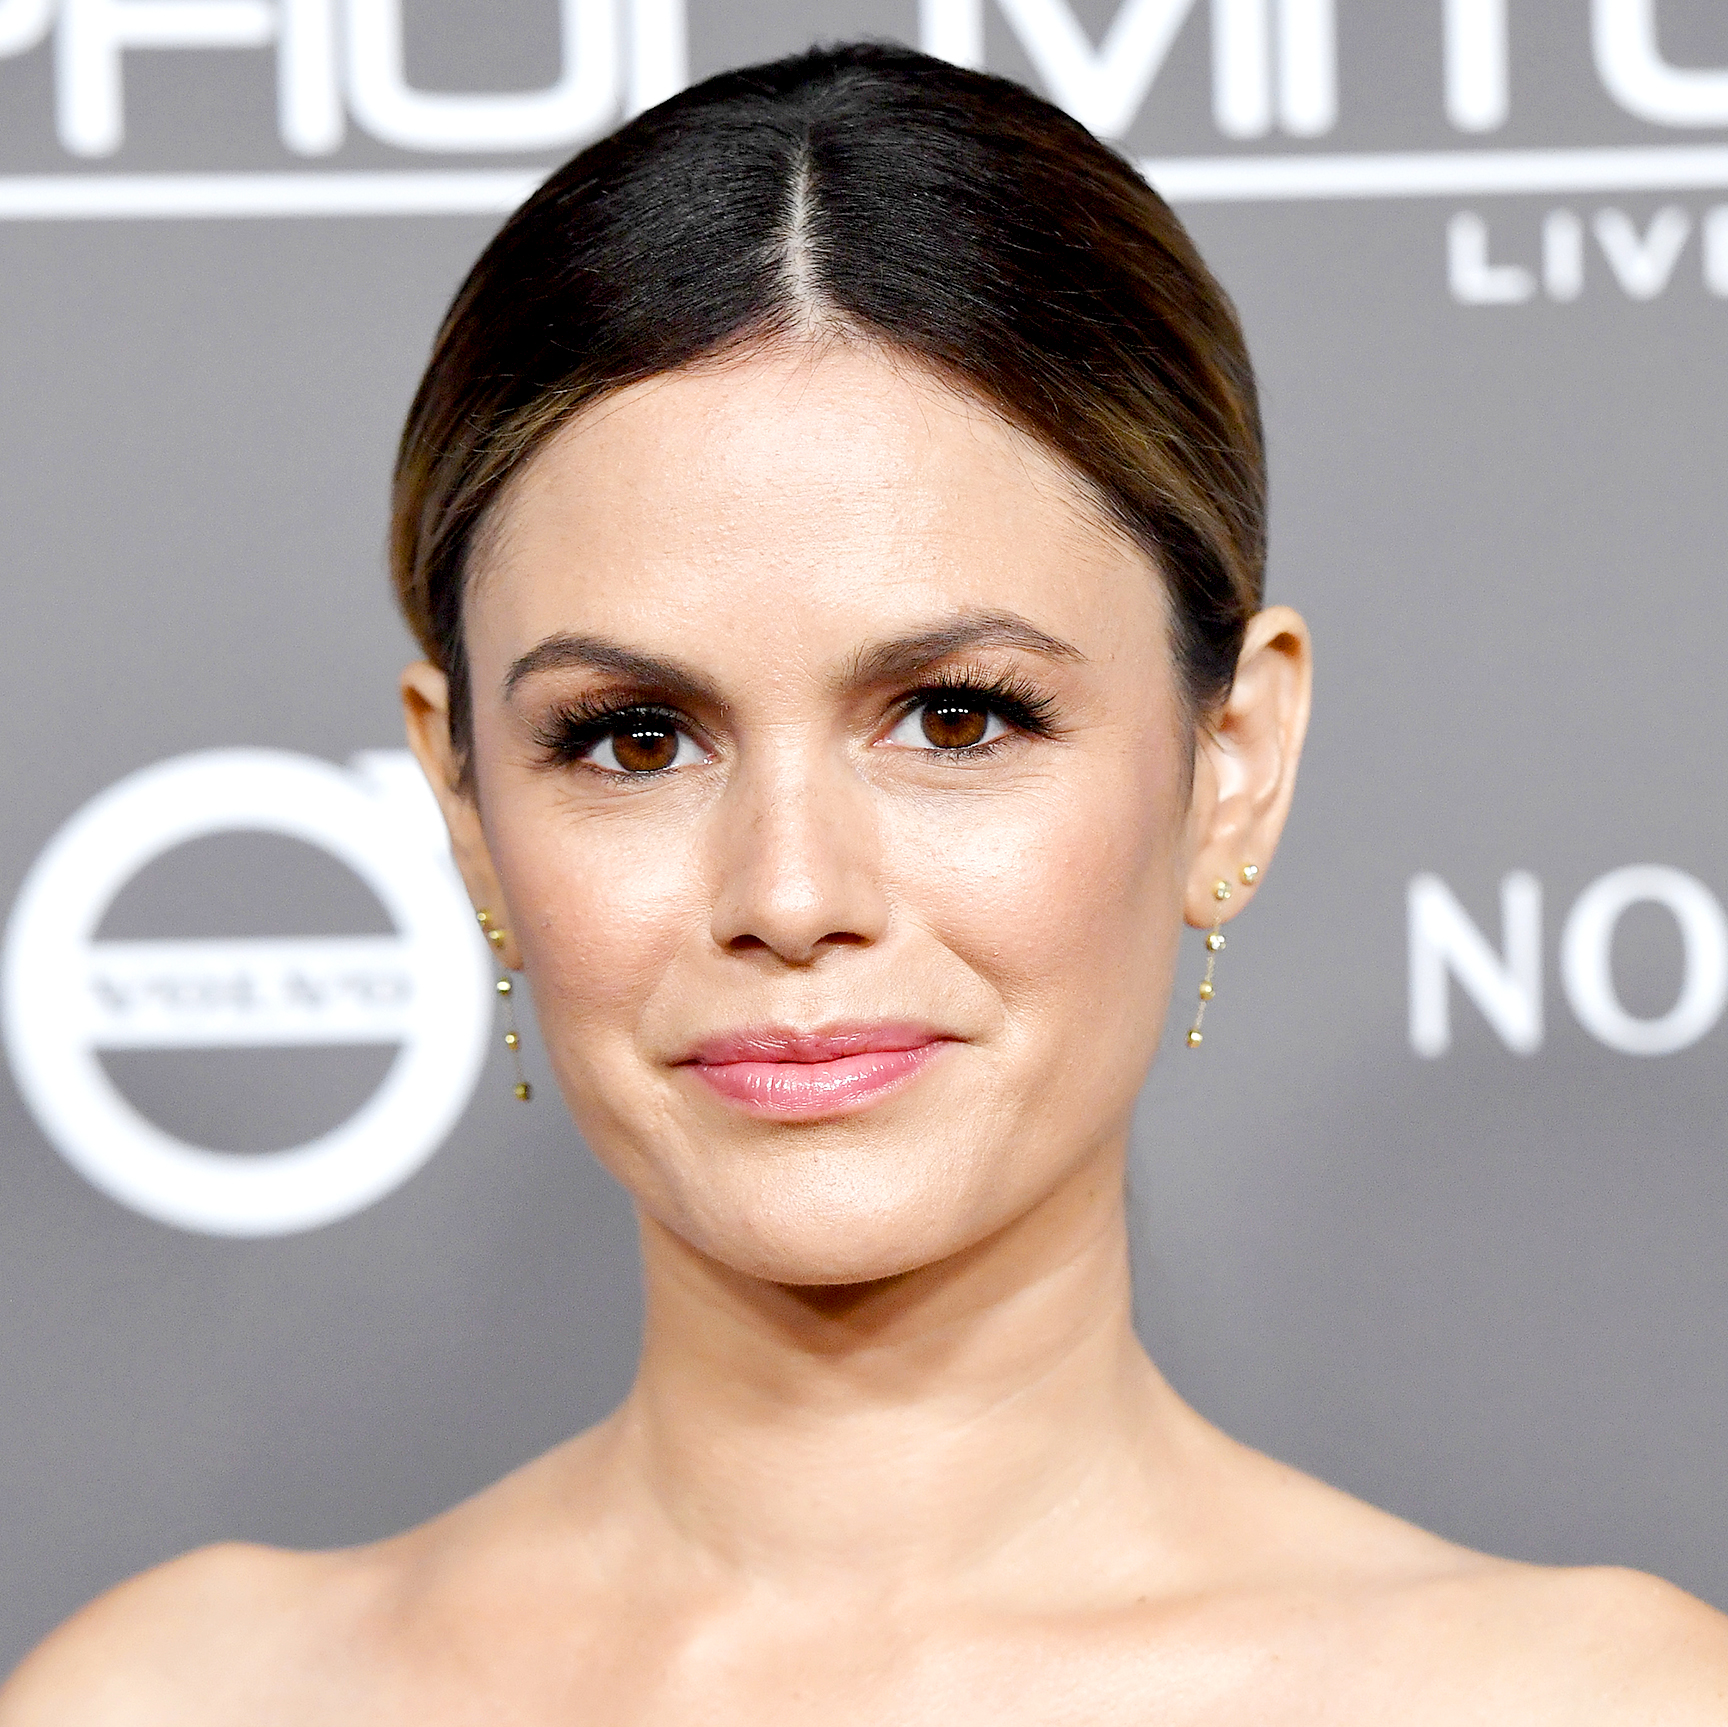 Rachel-Bilson - The O.C. alum's emojis said it all: She replied with three kissing faces, an ice cream cone and a strong arm.